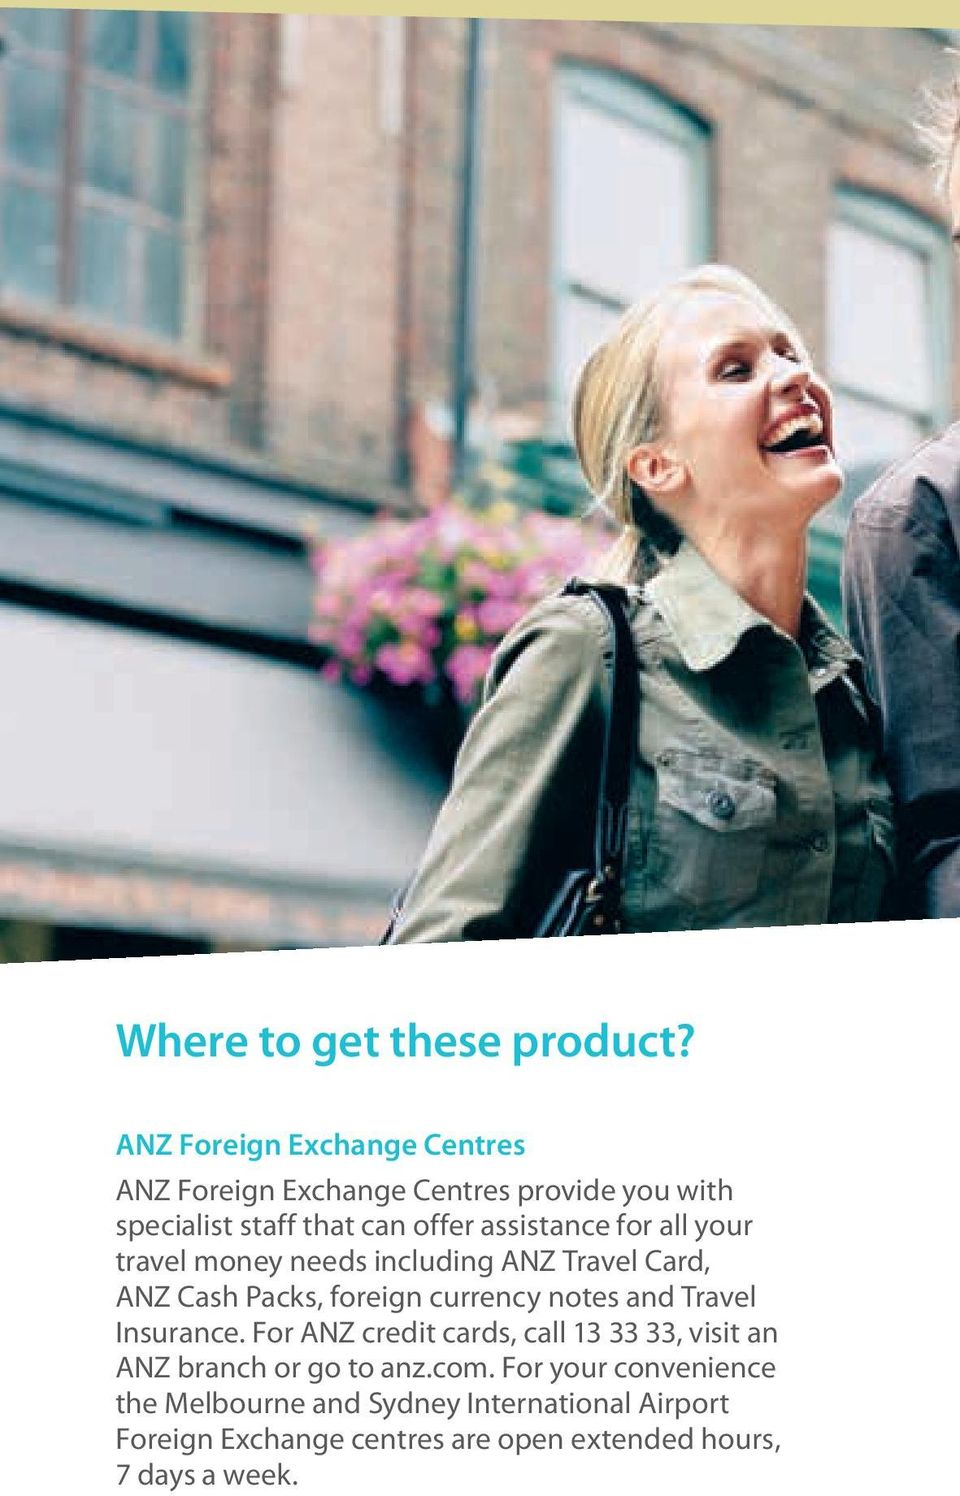 for all your travel money needs including ANZ Travel Card, ANZ Cash Packs, foreign currency notes and Travel Insurance.